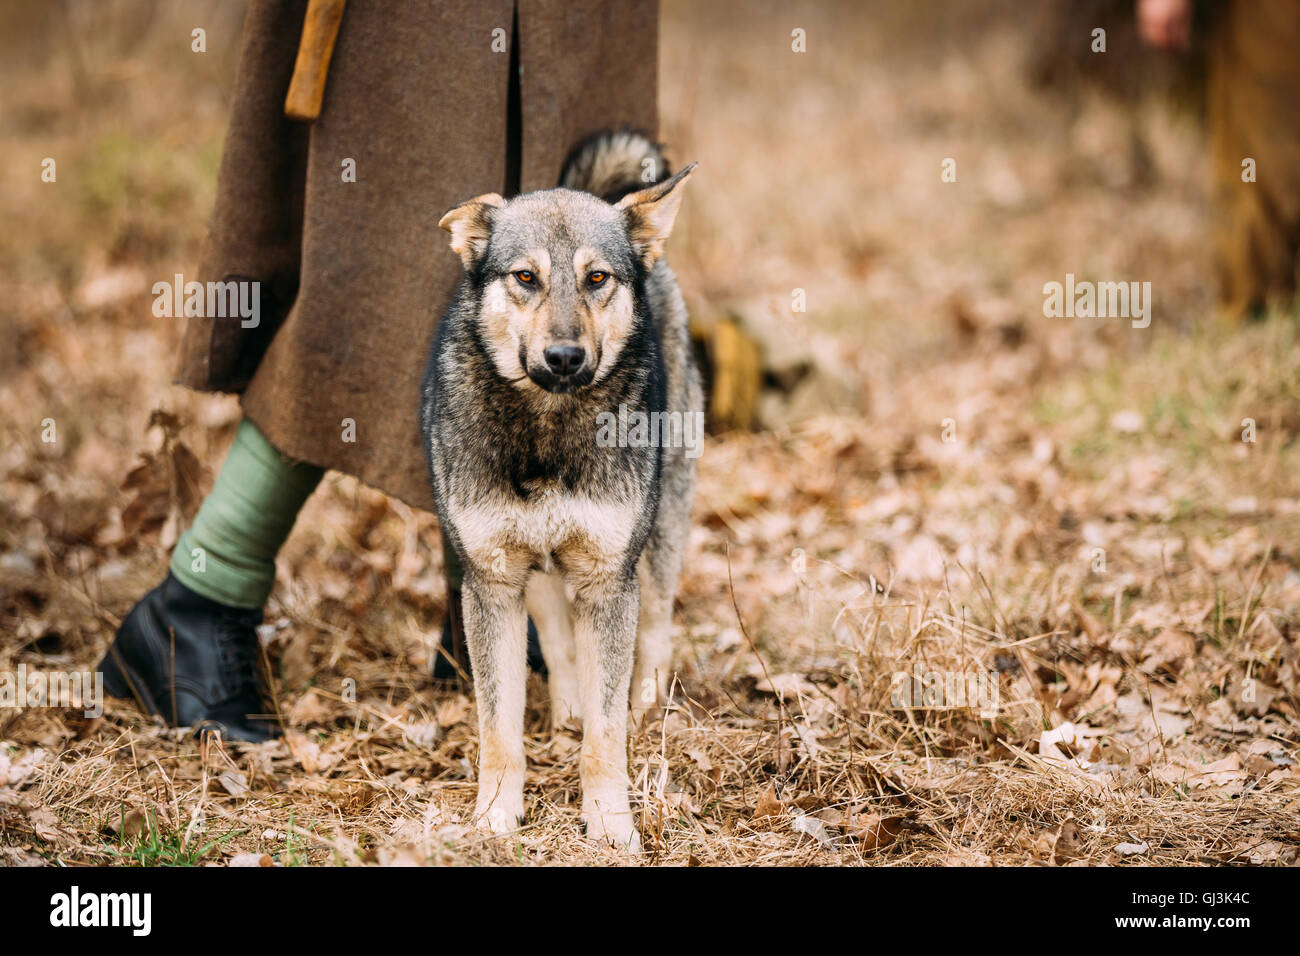 Hunting Breed Pet Stock Photos & Hunting Breed Pet Stock Images - Alamy